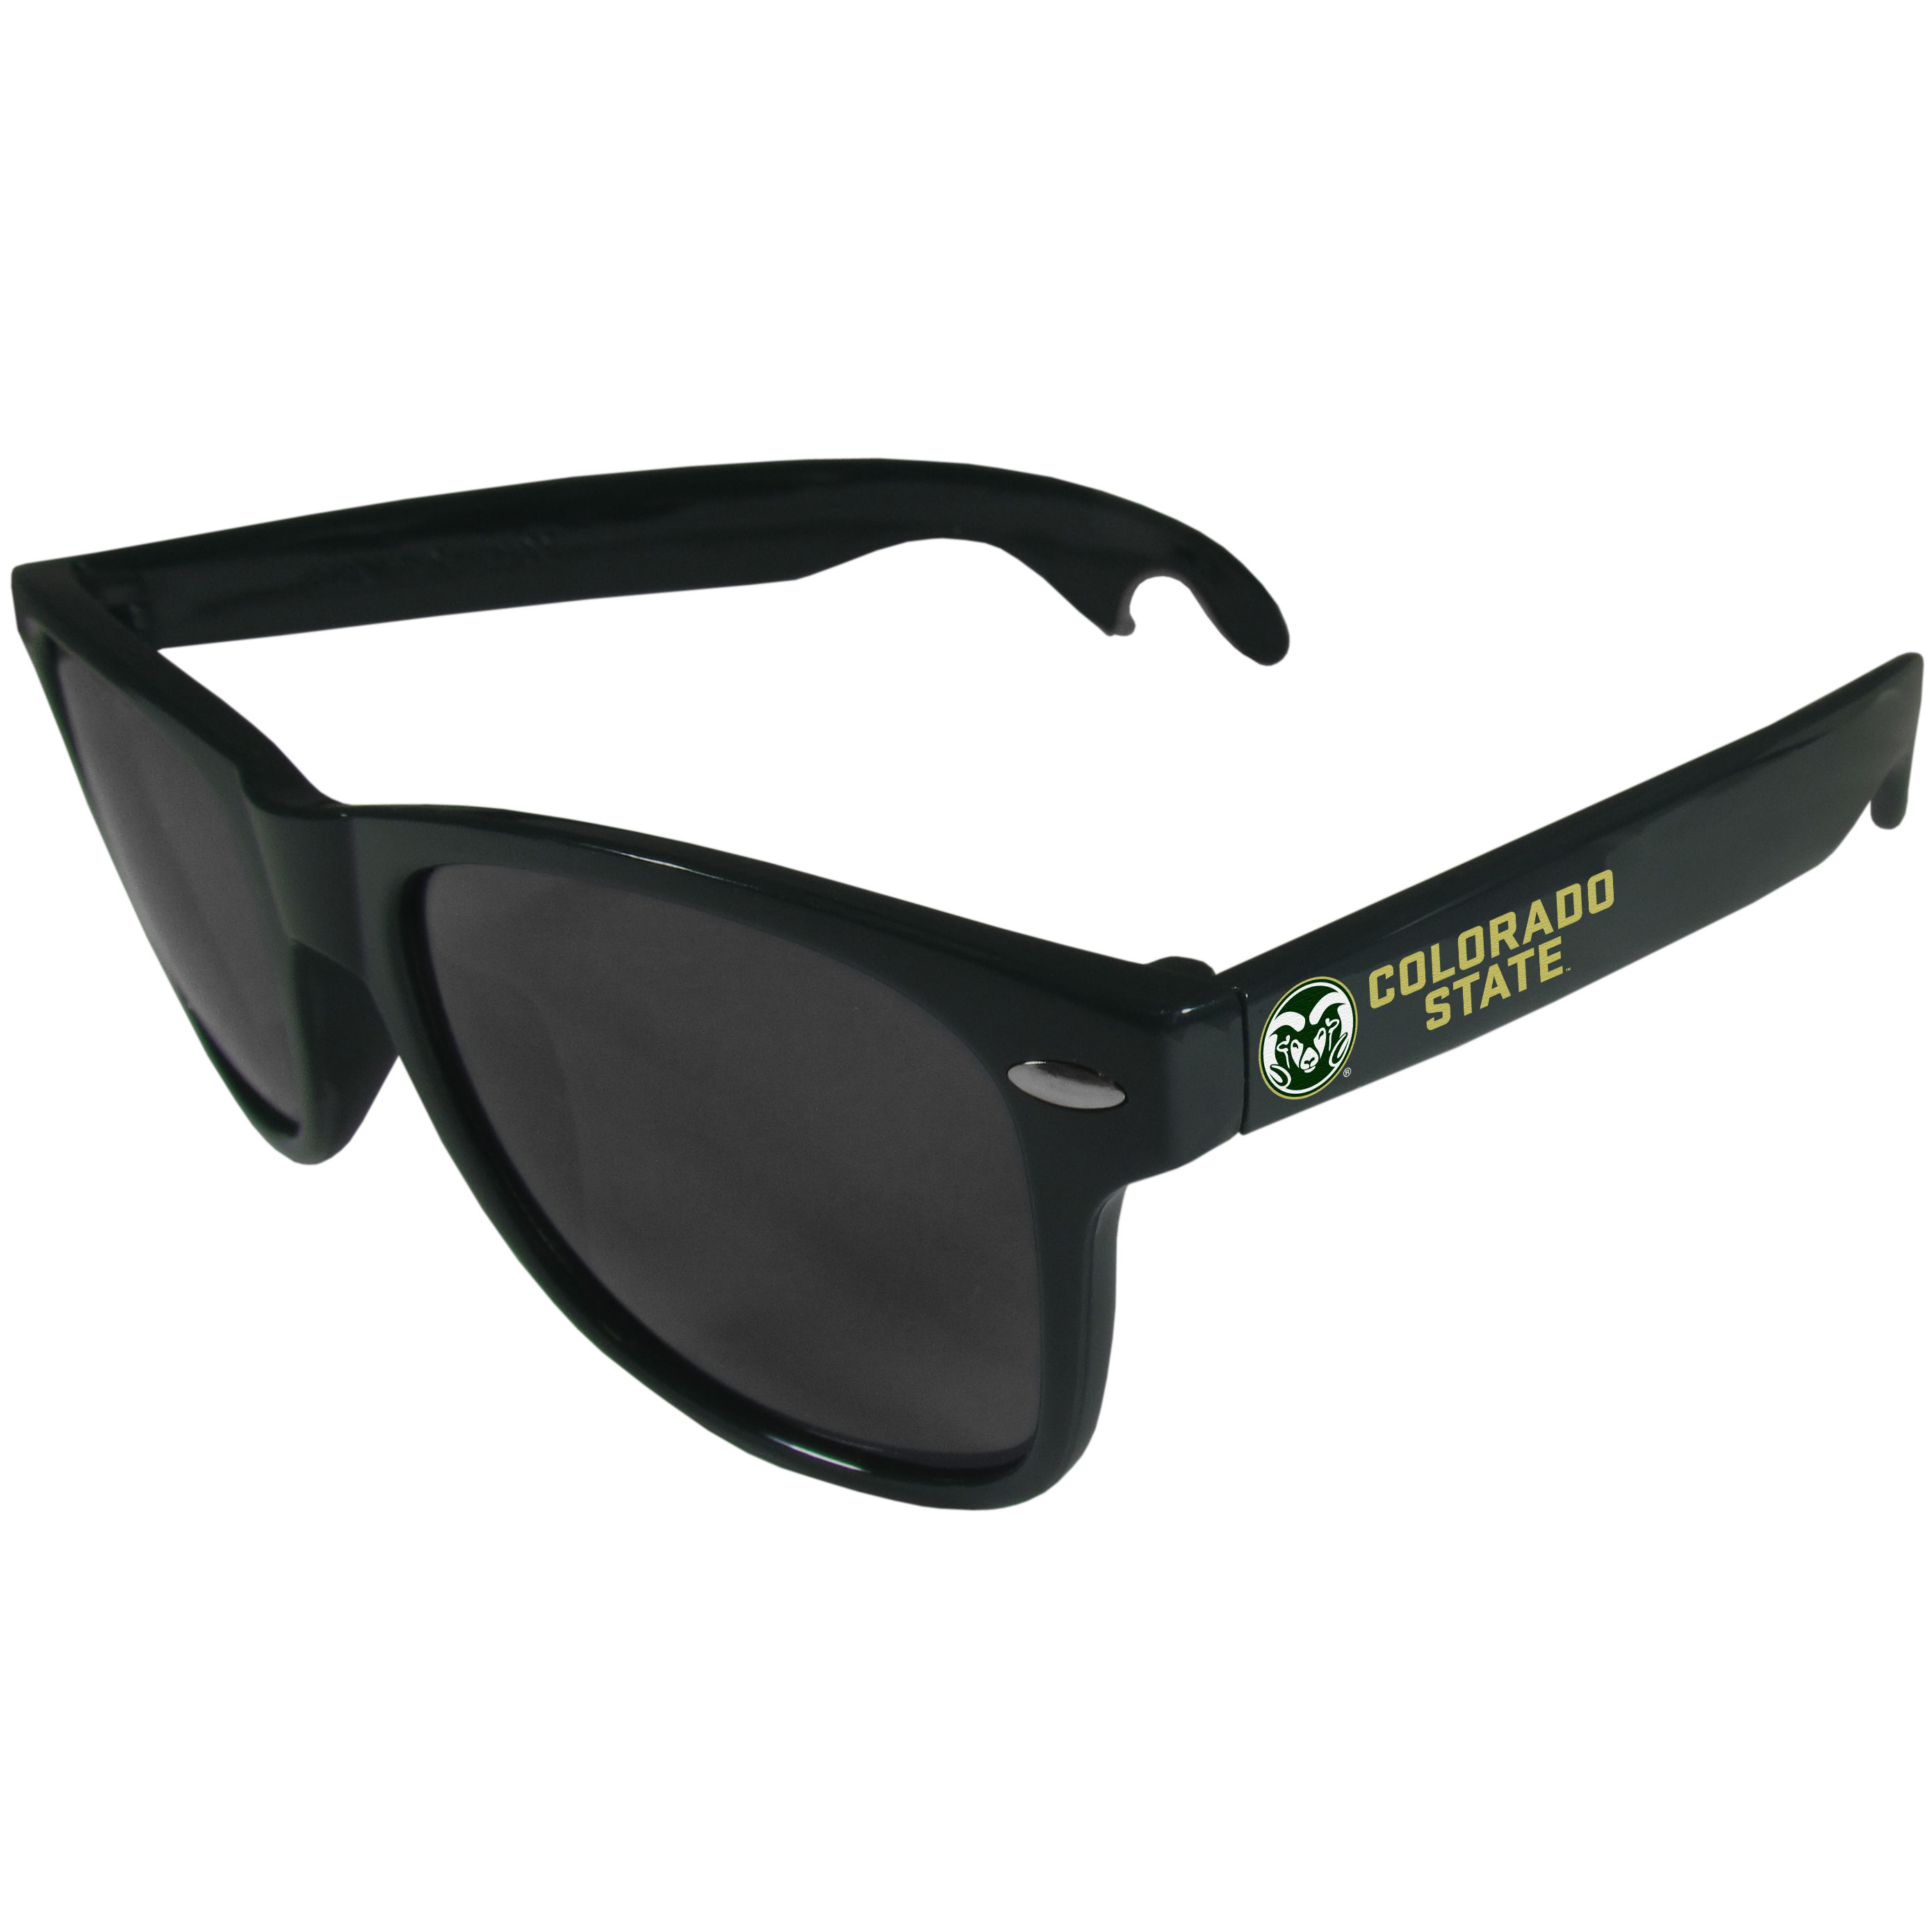 Colorado St. Rams Beachfarer Bottle Opener Sunglasses, Dark Green - Seriously, these sunglasses open bottles! Keep the party going with these amazing Colorado St. Rams bottle opener sunglasses. The stylish retro frames feature team designs on the arms and functional bottle openers on the end of the arms. Whether you are at the beach or having a backyard BBQ on game day, these shades will keep your eyes protected with 100% UVA/UVB protection and keep you hydrated with the handy bottle opener arms.